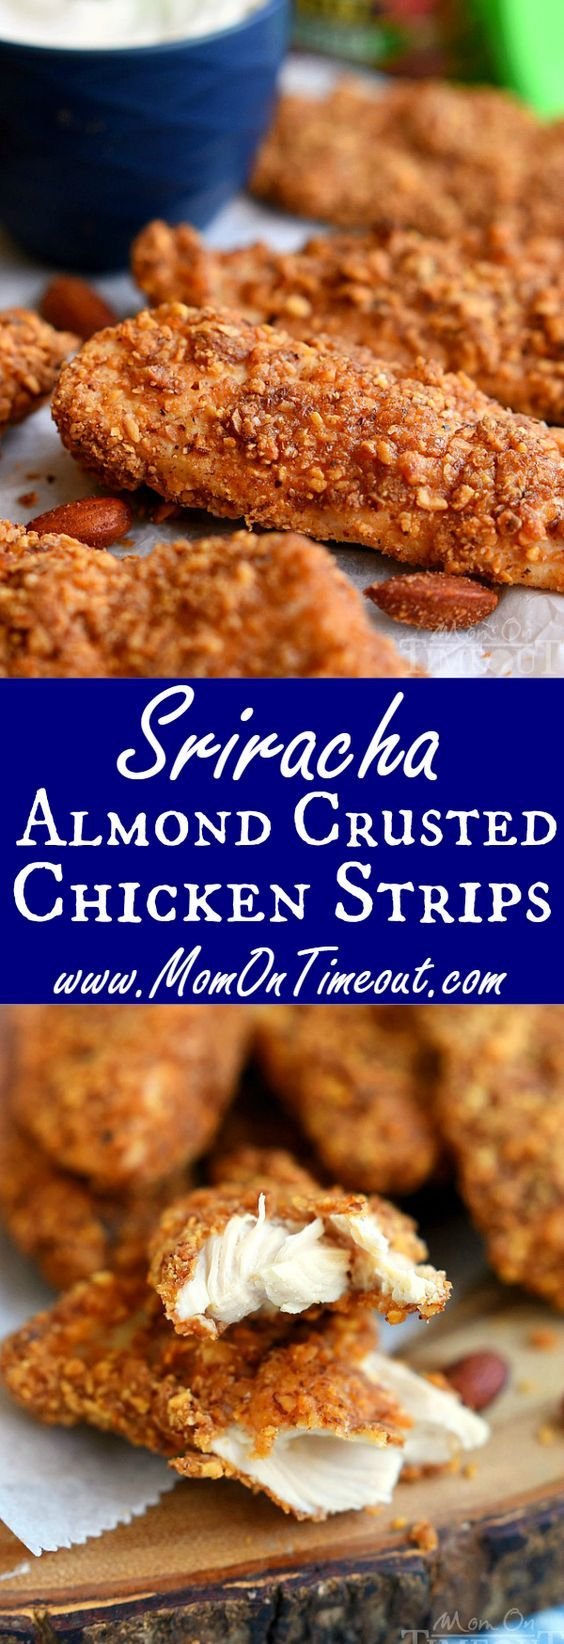 These Sriracha Almond Crusted Chicken Strips are the perfect recipe to spice things up for dinner tonight! Easy and so delicious, the whole family will love this healthy take on a family favorite! Perfect for game day appetizers too! | MomOnTimeout.com  | #easy #chicken #dinner #ad